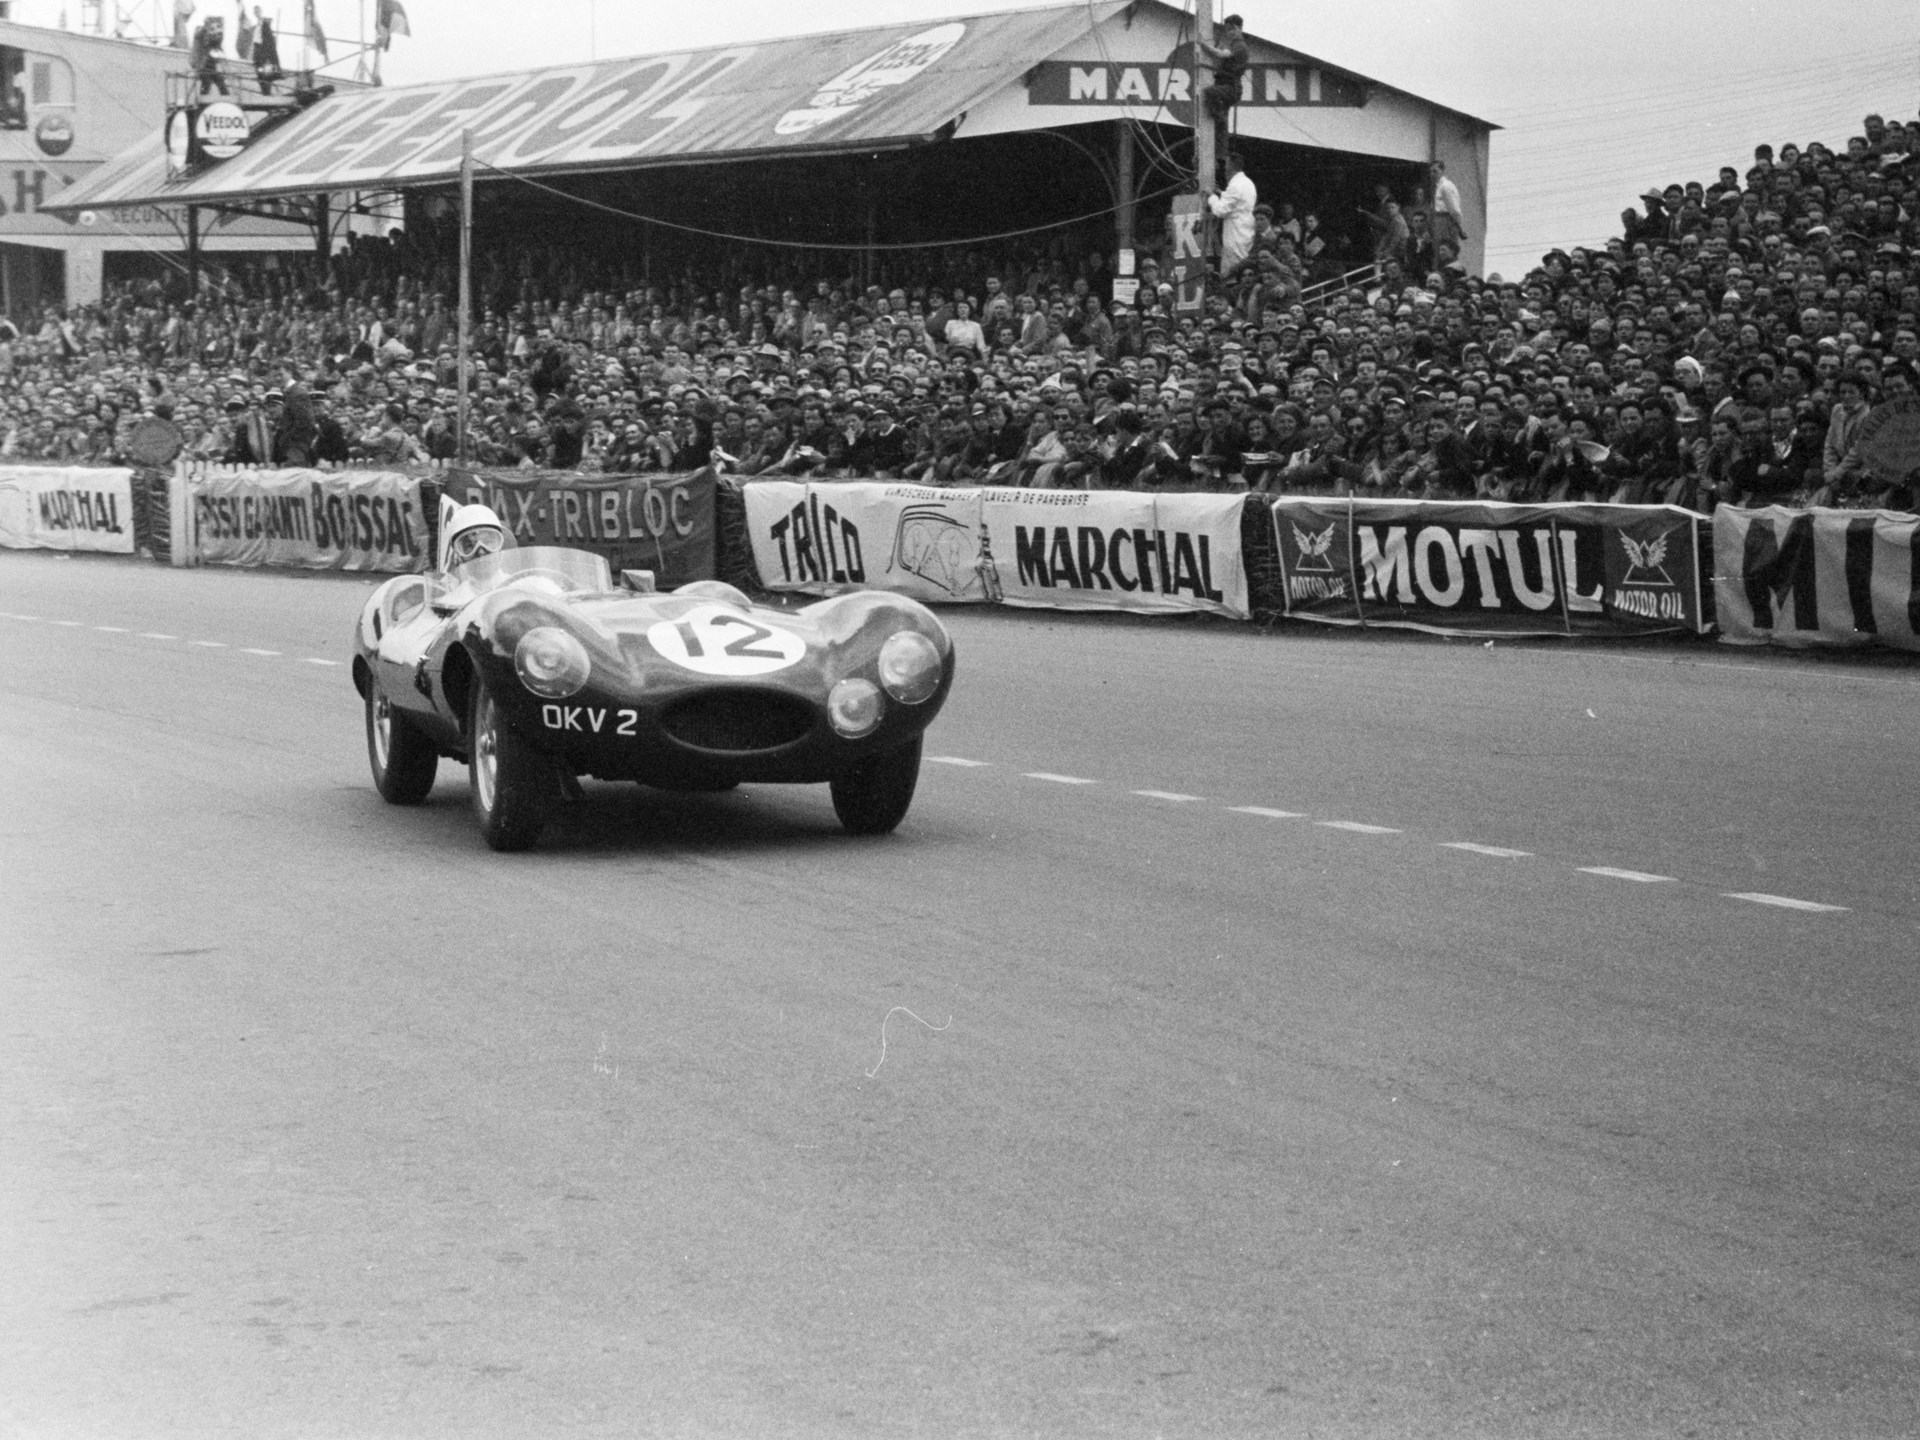 OKV2 at speed during the 1954 24 Hours of Le Mans.